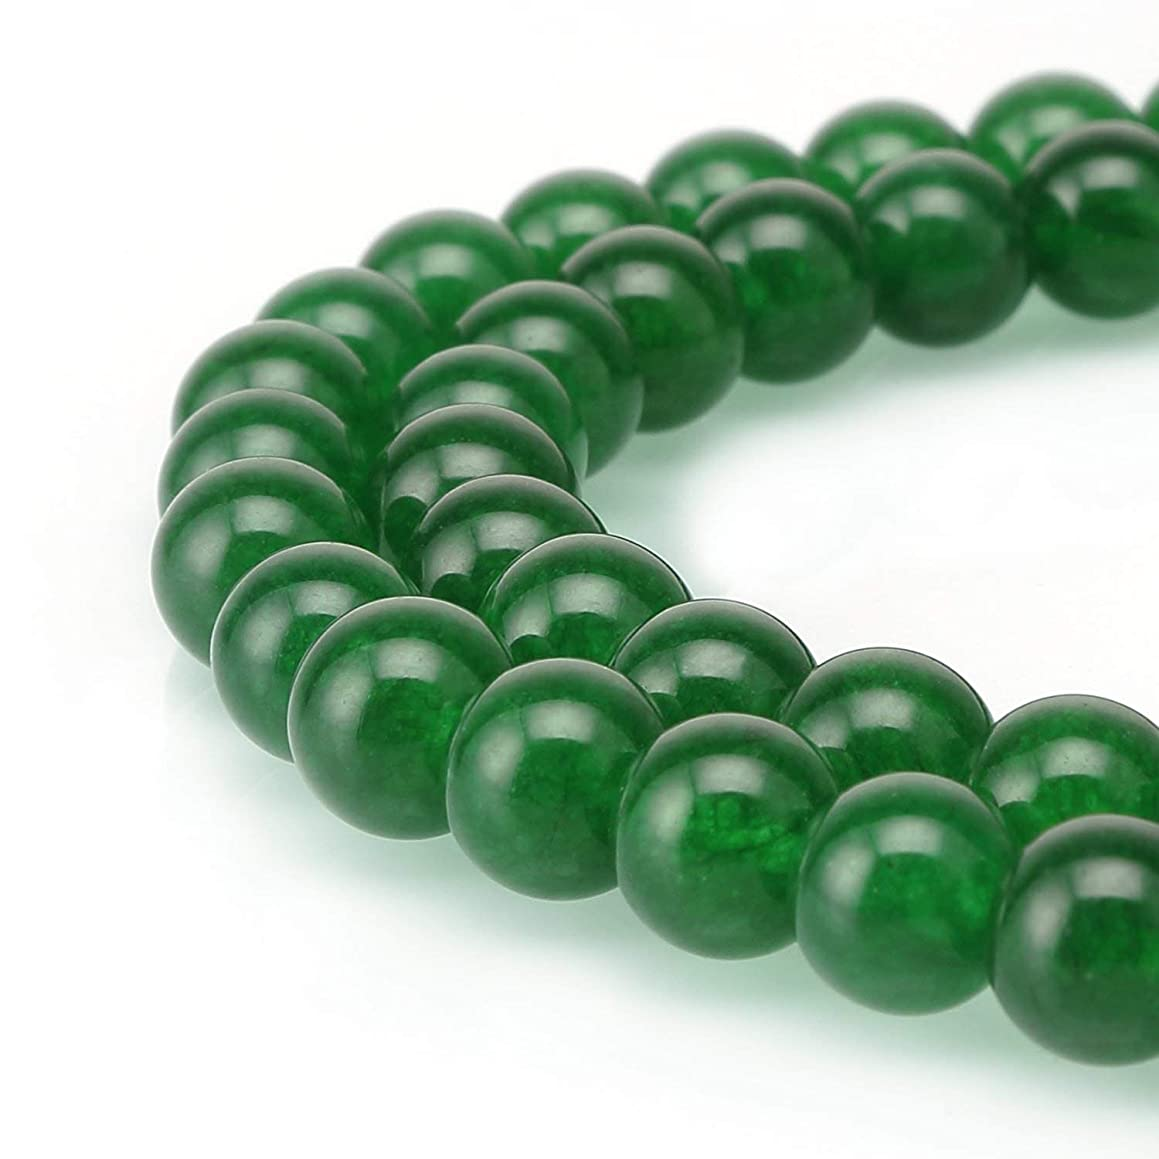 2 Strands Top Quality Natural Green Jade Gemstone Loose Round Beads 6mm Spacer Beads 15.5 inch per Strand 15GSL-6G